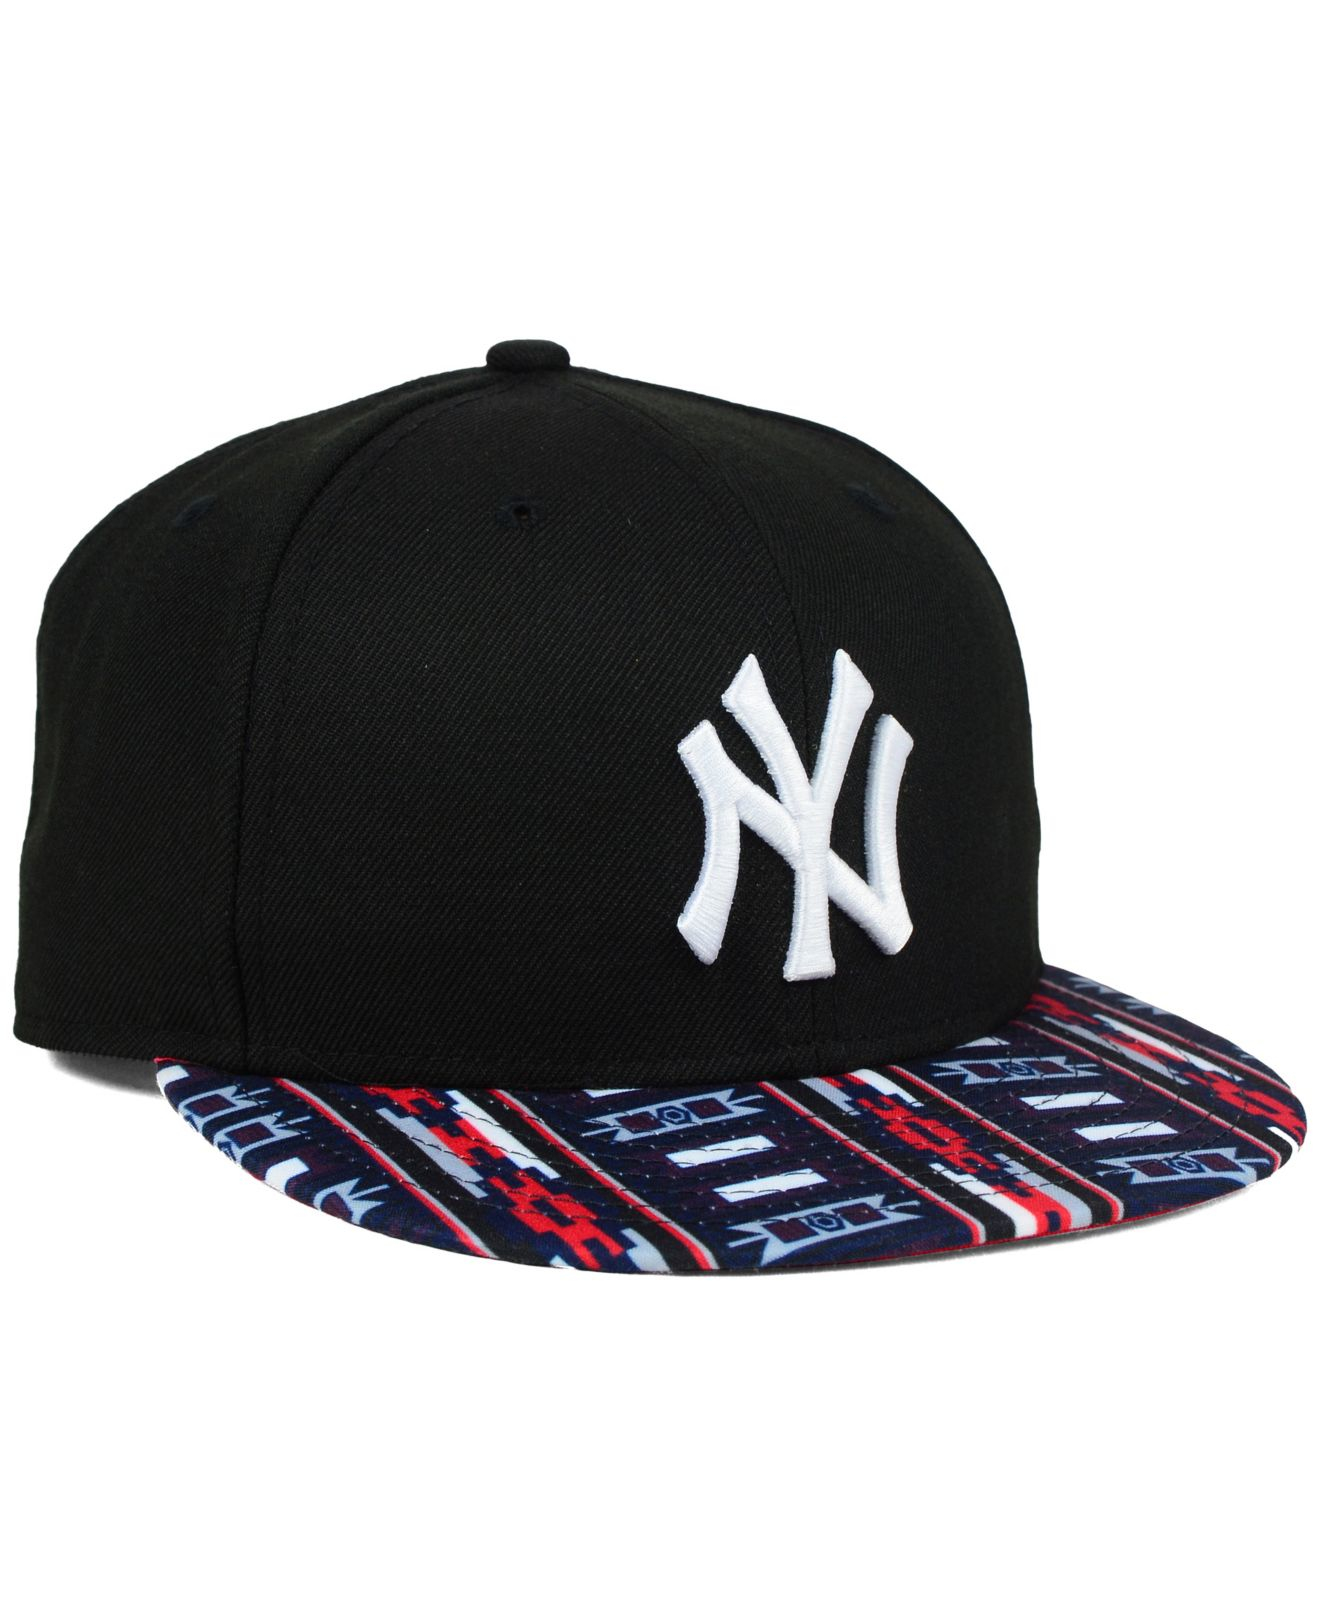 Ktz New York Yankees A Tech 9fifty Snapback Cap In Black